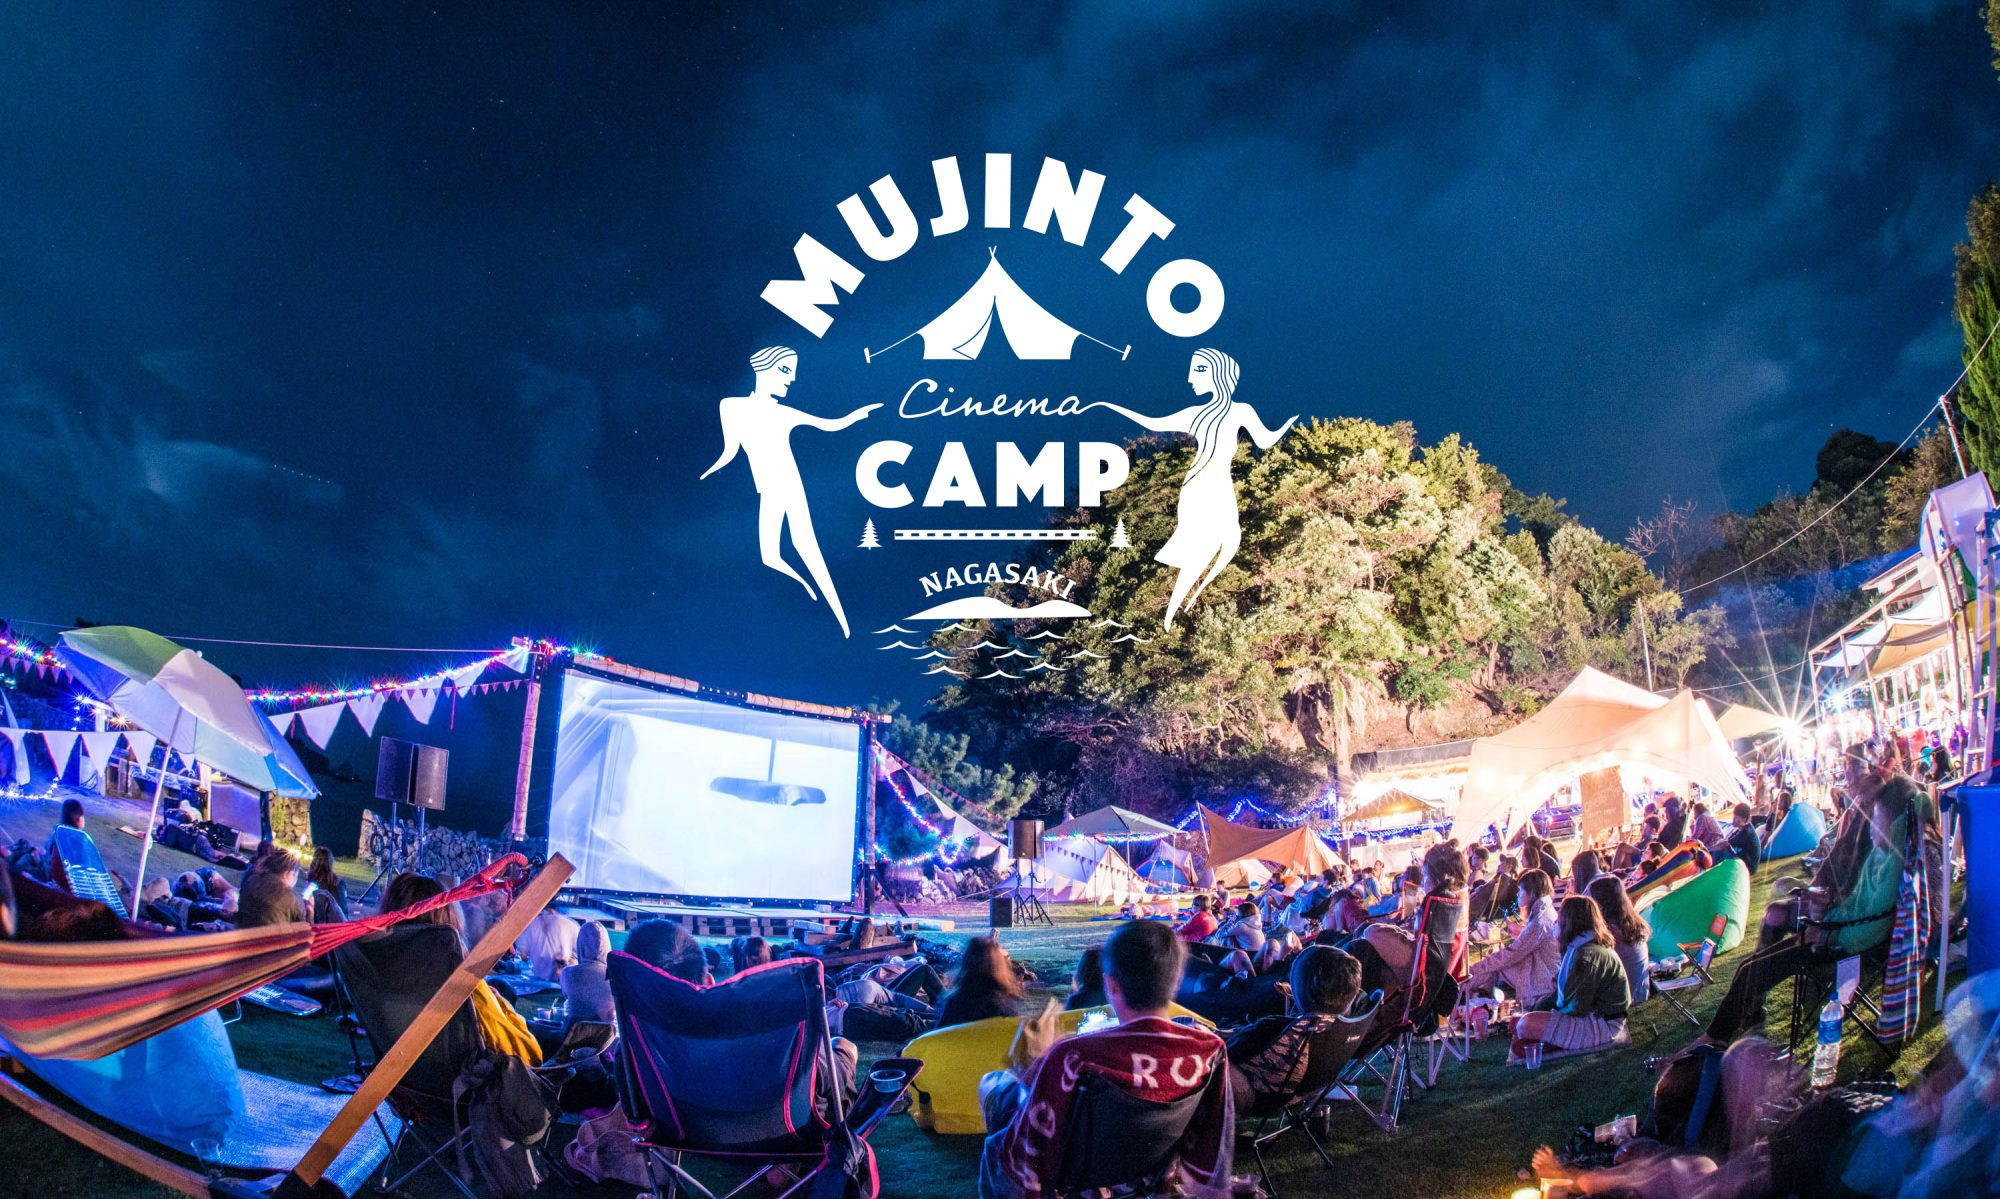 MUJINTO cinema CAMP NAGASAKI 2018